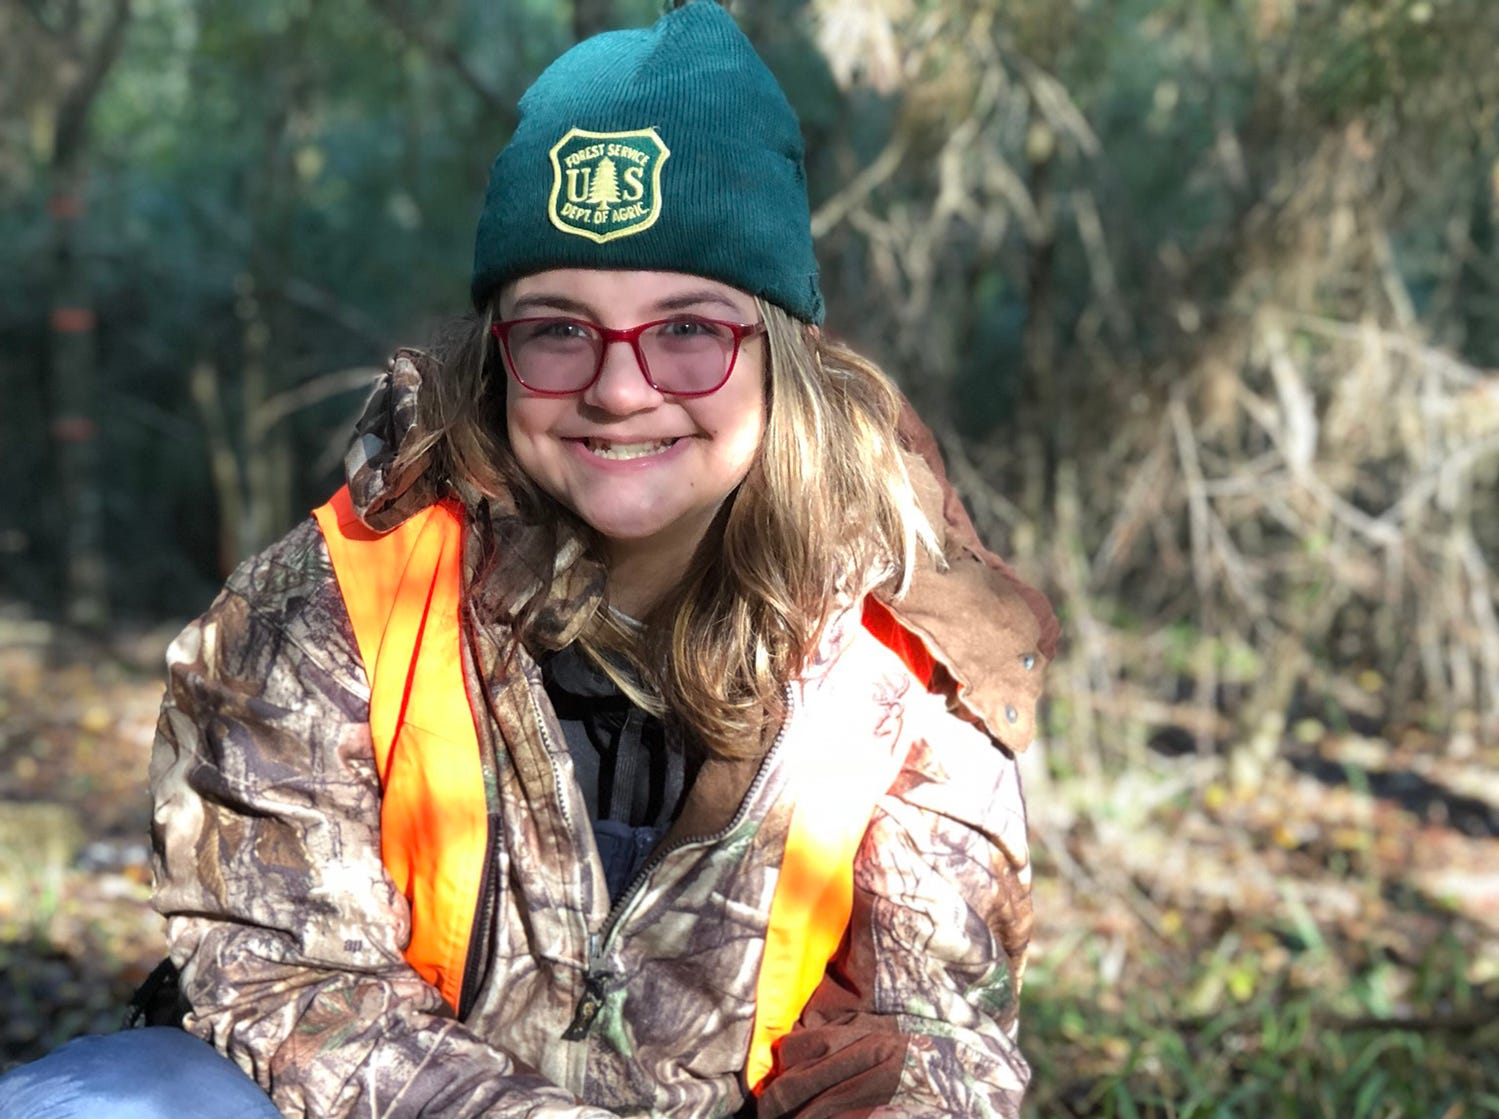 Halle Craven, 12, of Ovett, harvested this buck after having a doe blow at her followed by a flock of turkeys walking through. The young buck then suddenly appeared beside her blind.